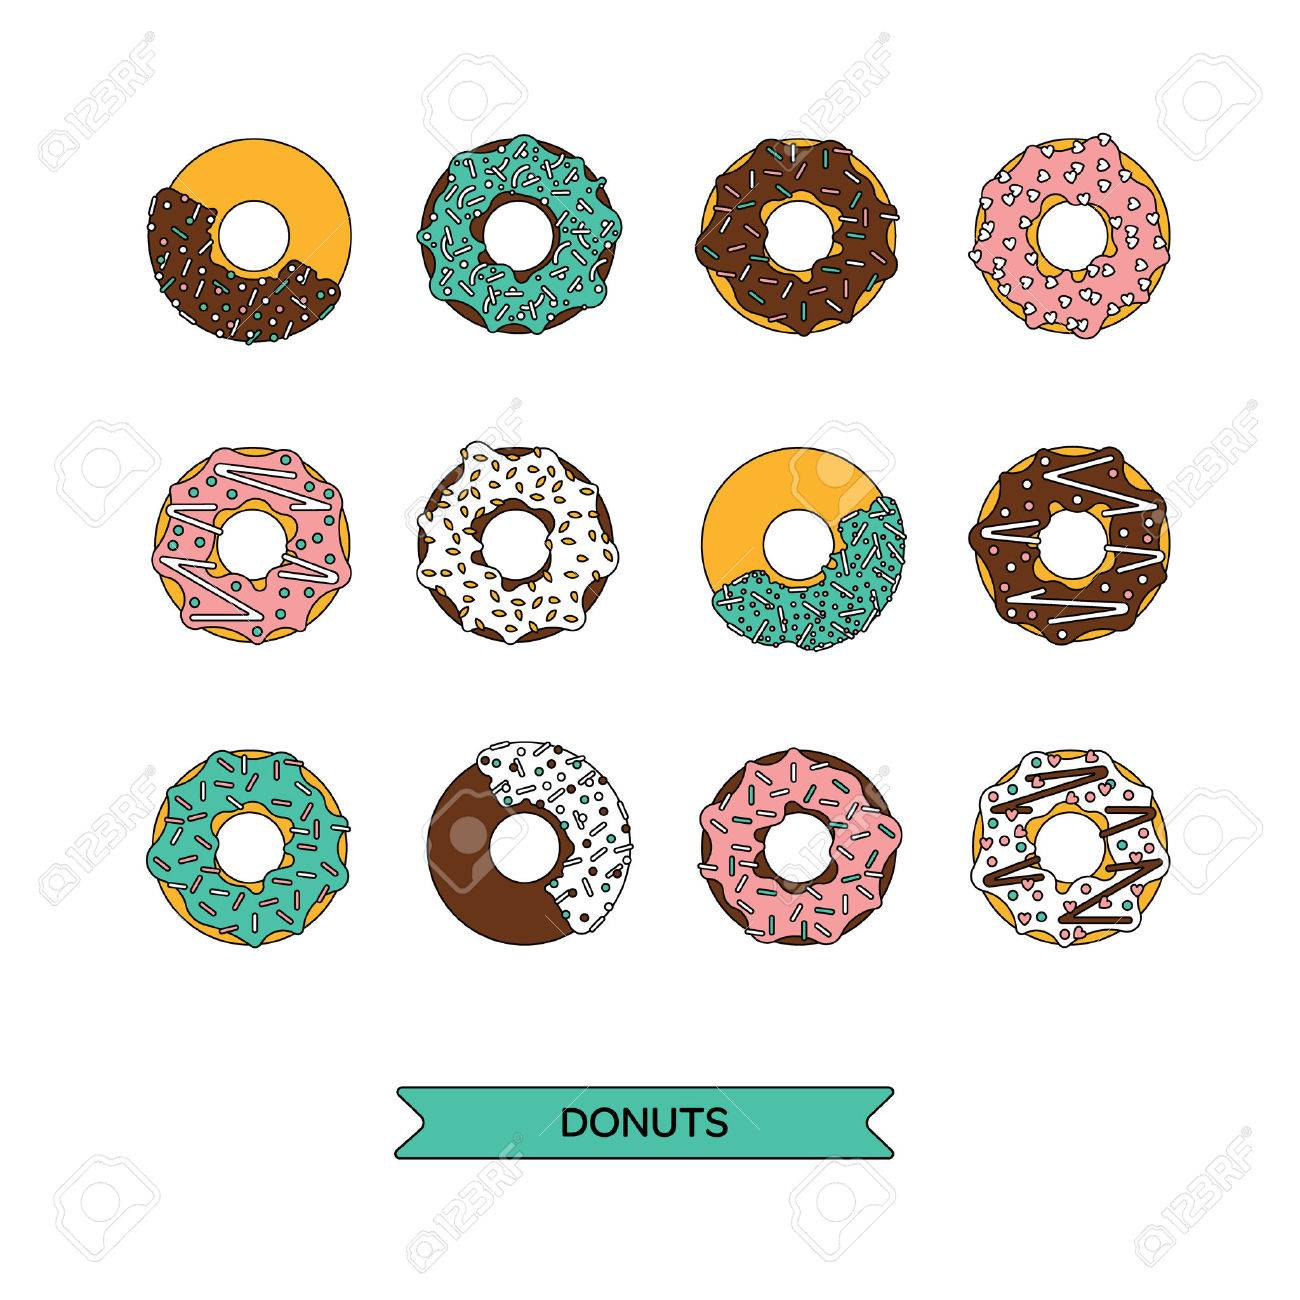 Vector donut illustration. Donut isolated on a white background. Deserts food in a flat style. Set of sweet donuts with frosting and caramel topping. Donuts icons. Donut isolated. - 51374040